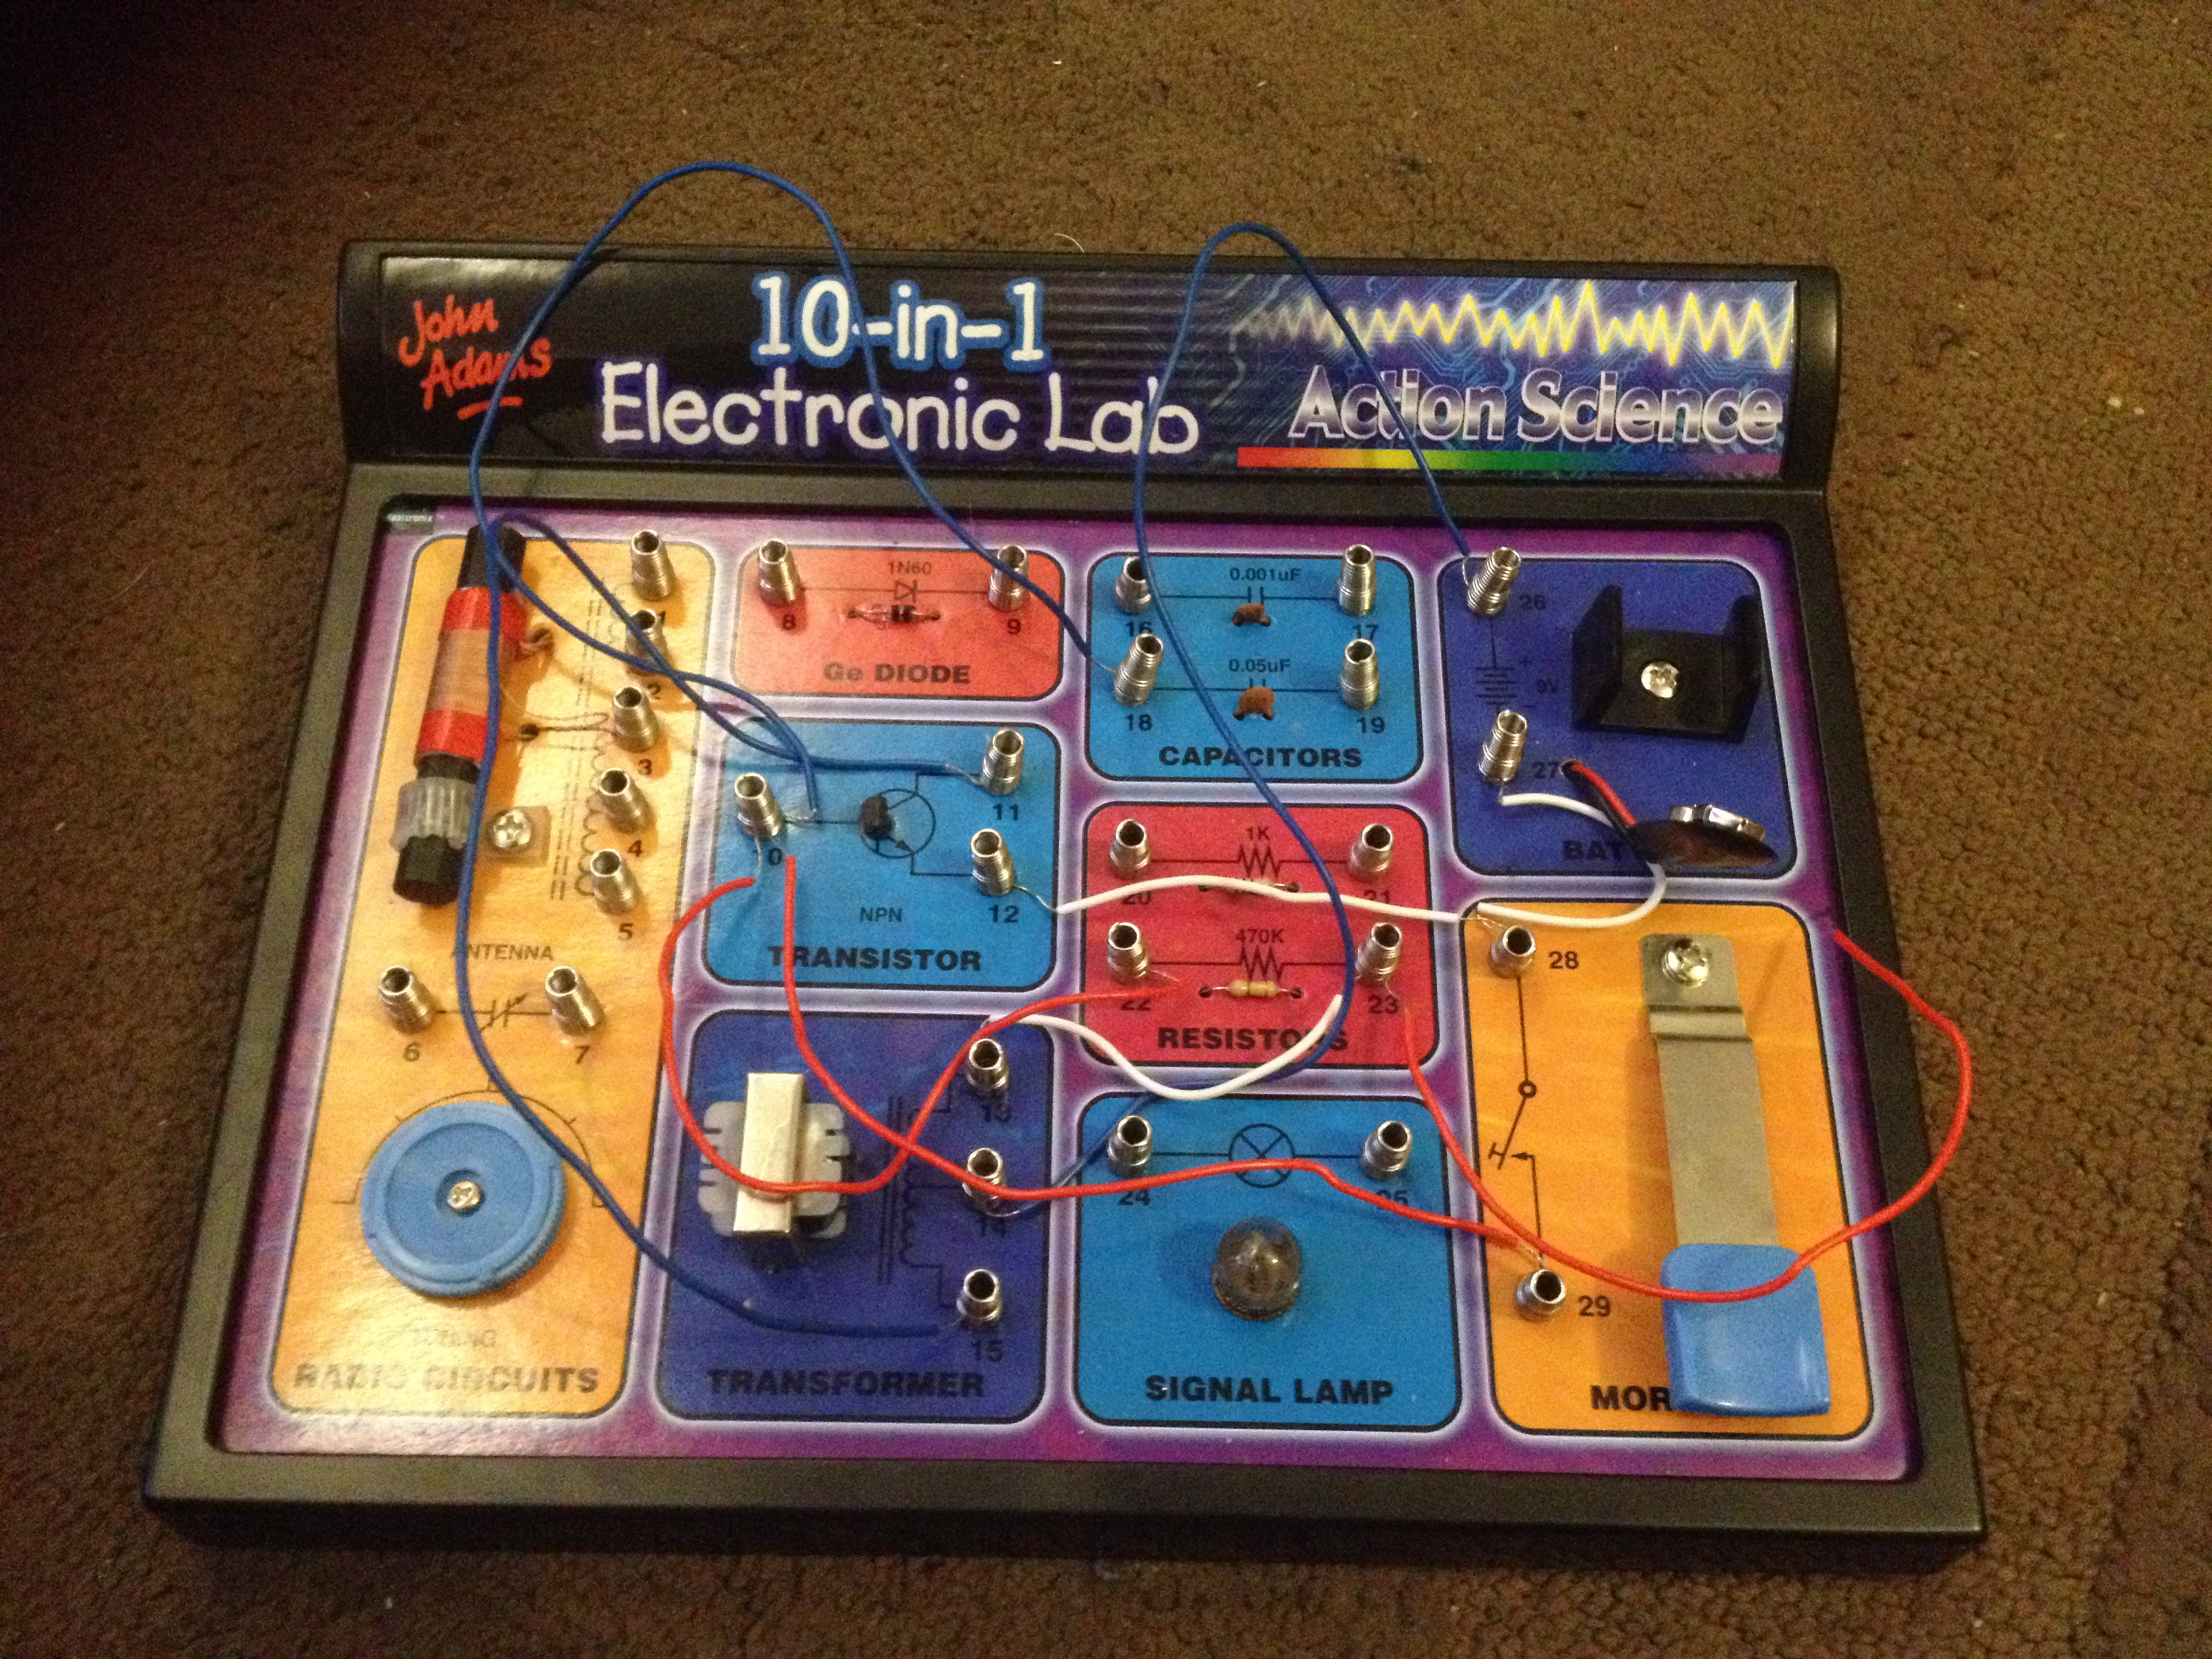 Music Technology Garry Hall Methods For Automotive Electronics Circuits Electronicslab 10 In 1 Lab